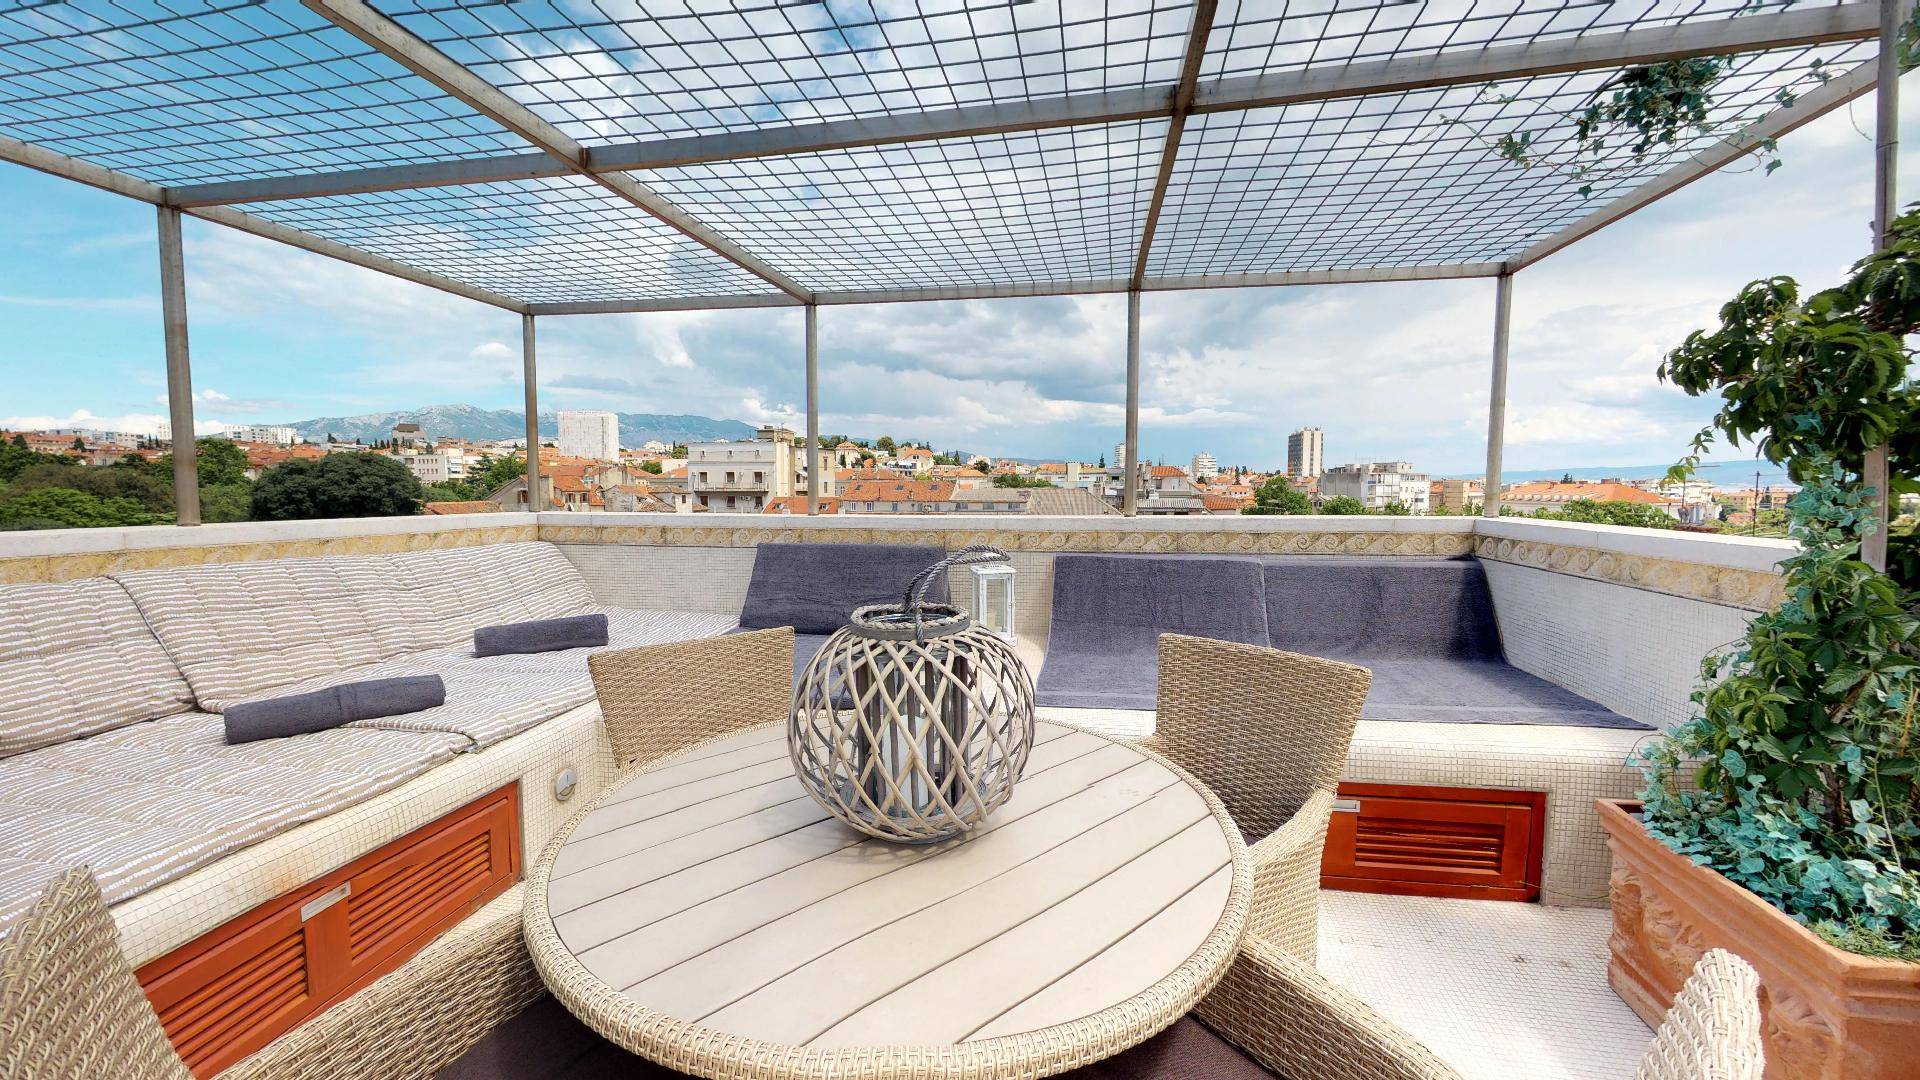 Unique duplex penthouse apartment with rooftop terrace in the heart of the palace